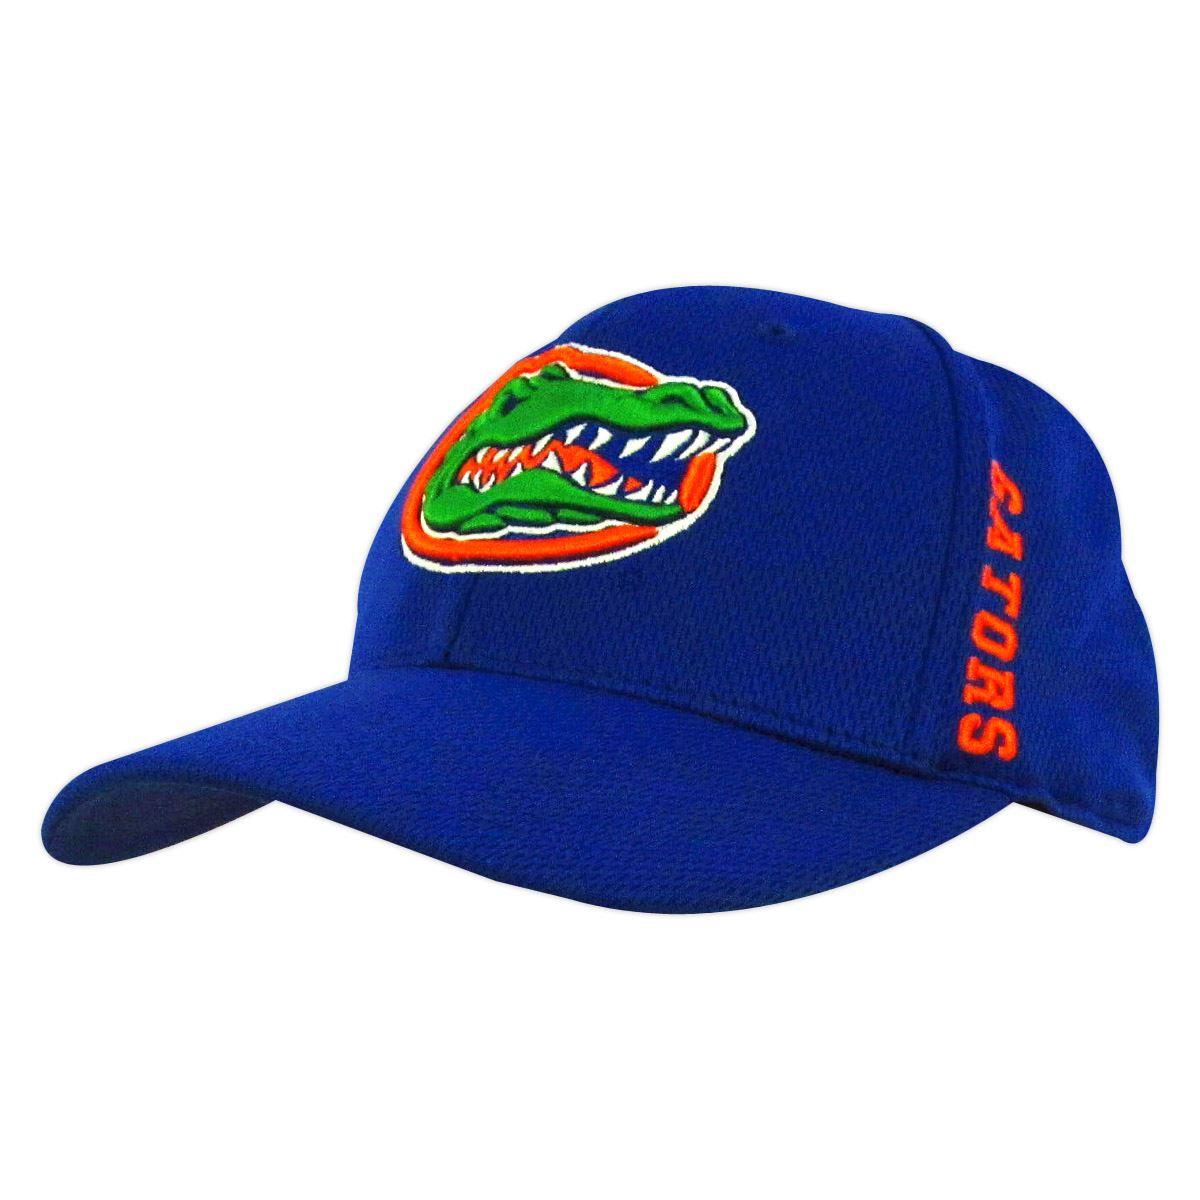 Florida Gators Booster Blue One Fit Hat